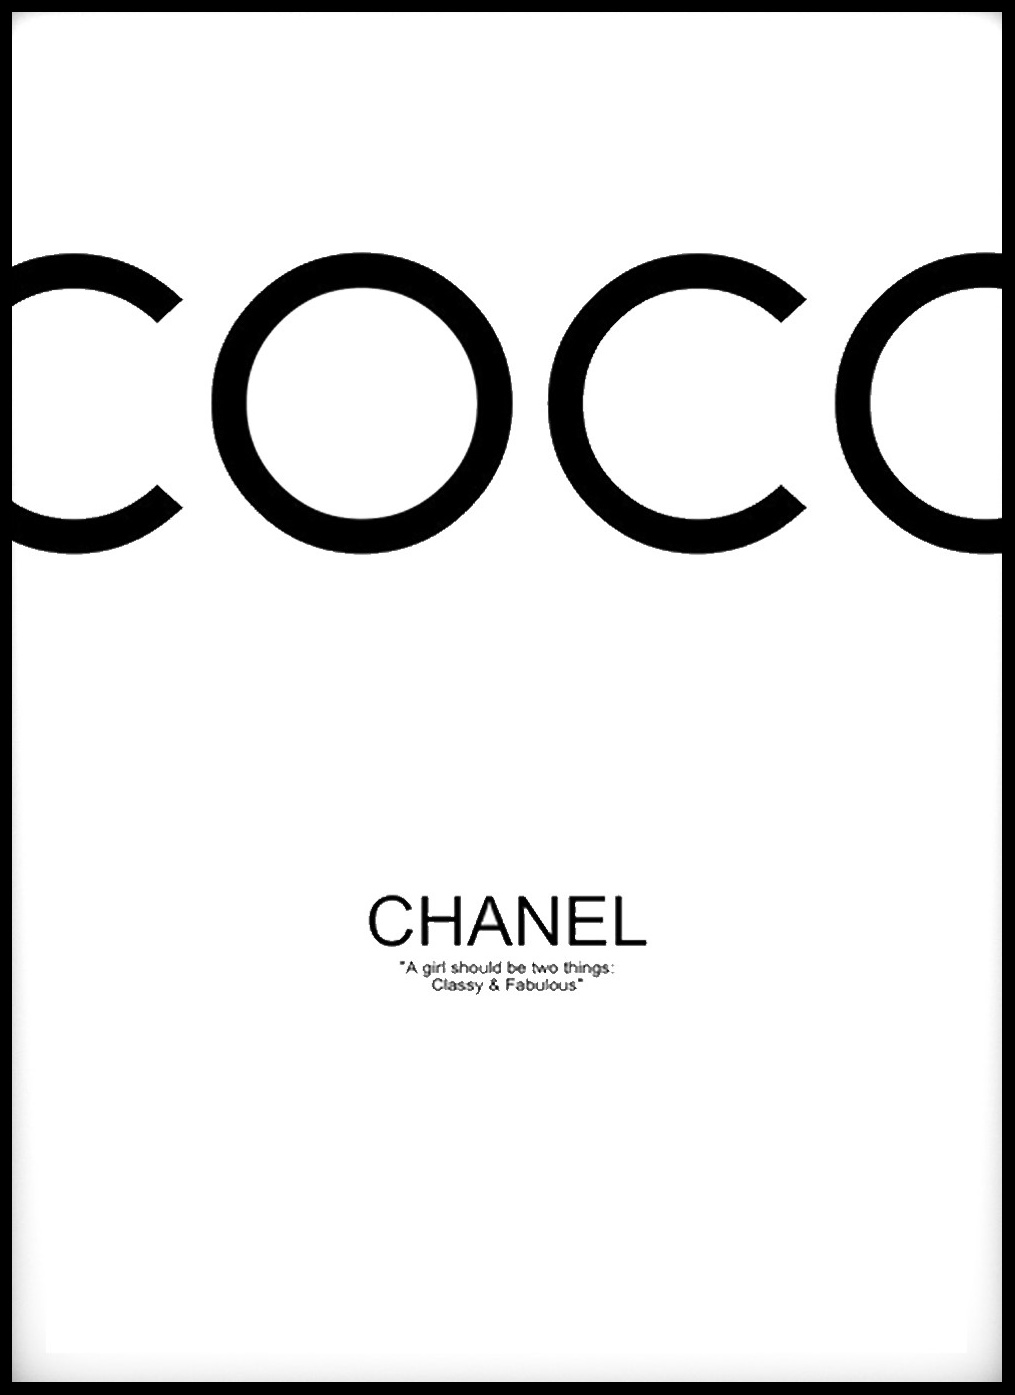 coco chanel black 50x70 cm bga fotobutik. Black Bedroom Furniture Sets. Home Design Ideas